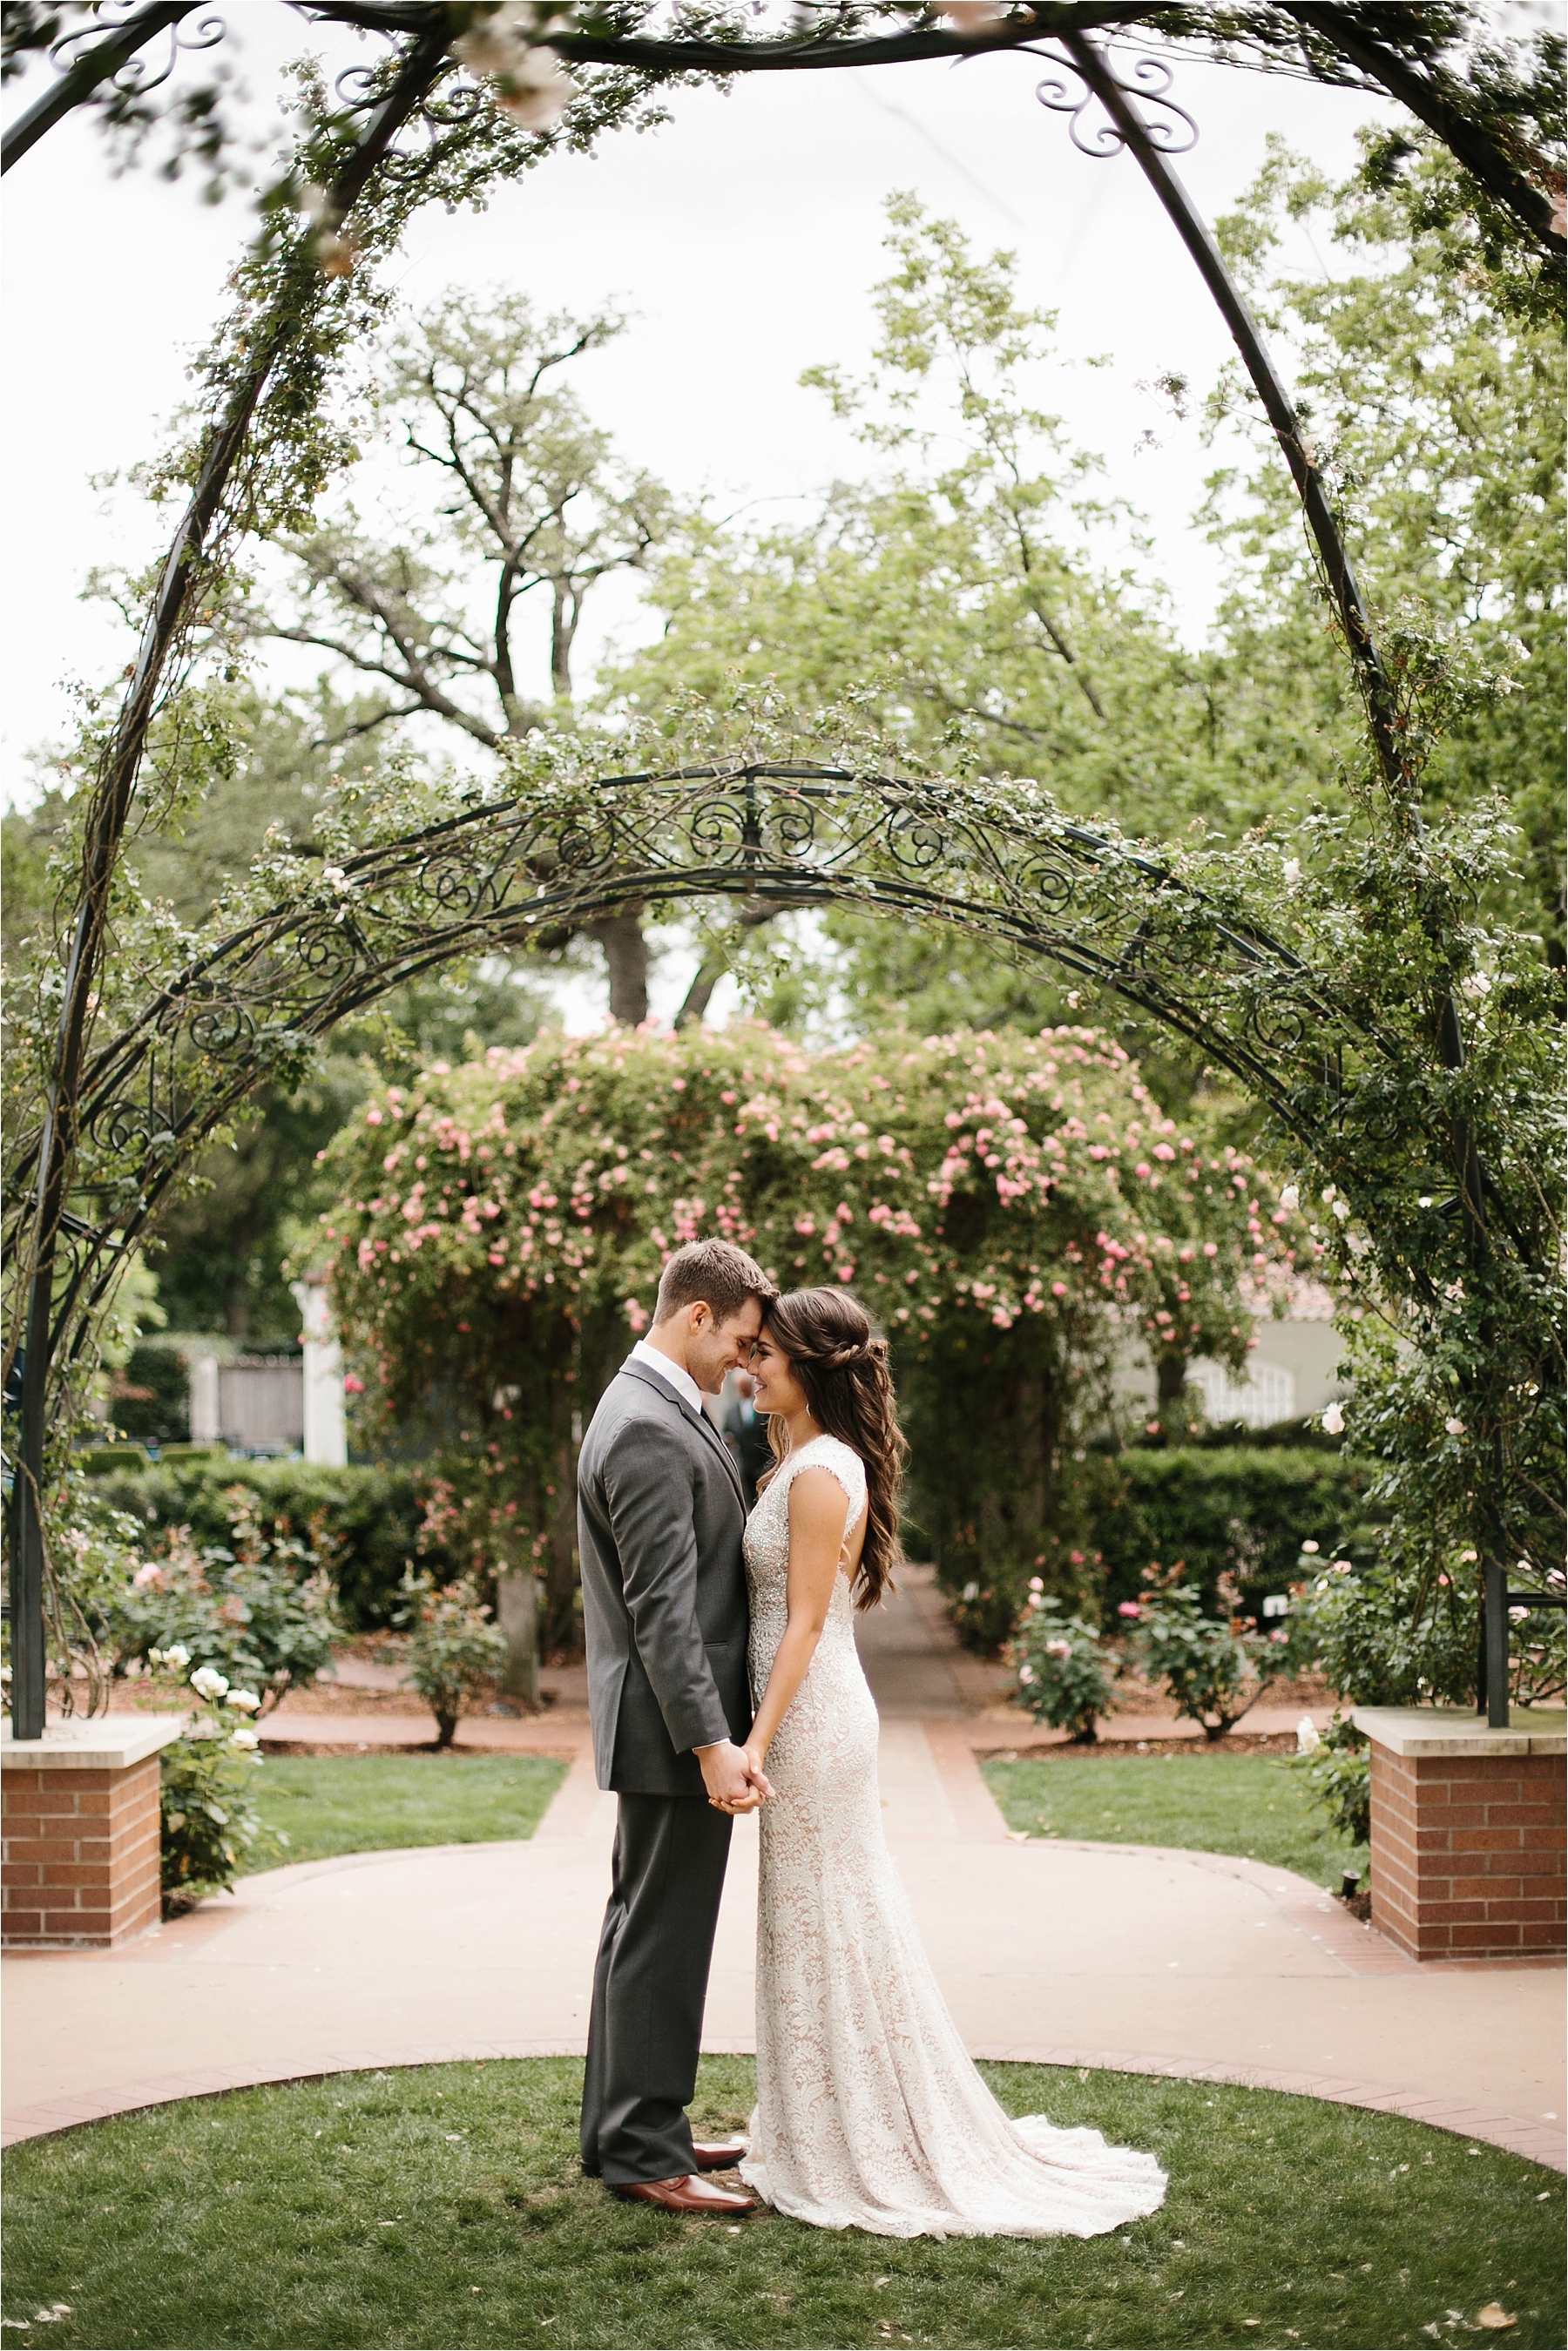 Devyn + Caden __ a Dallas Arboretum Garden Style Wedding by North Texas Wedding Photographer Rachel Meagan Photography __ 051